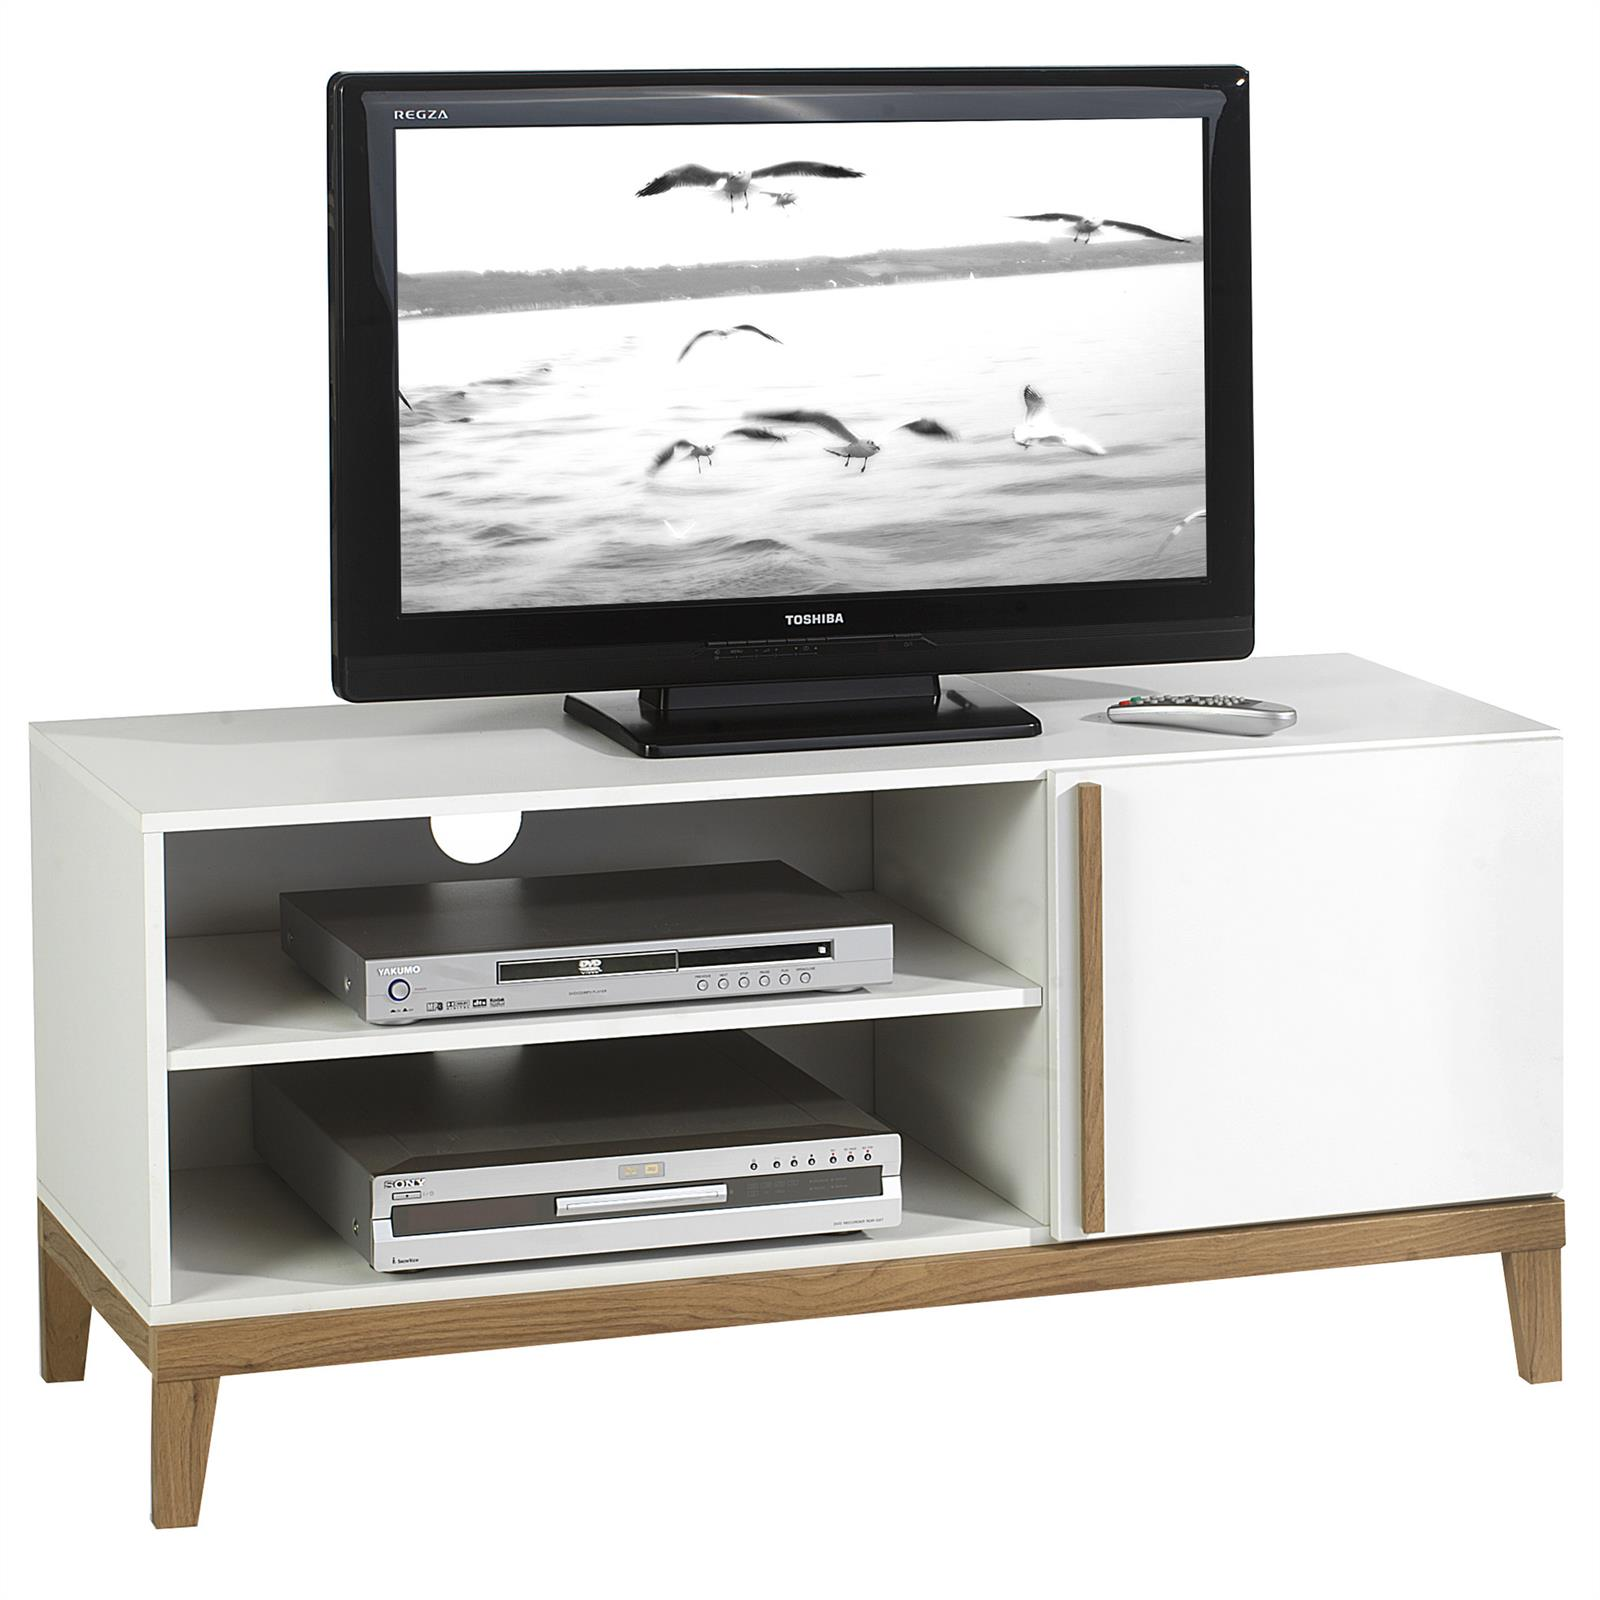 meuble tv riga 2 niches 1 porte blanc et bois mobil. Black Bedroom Furniture Sets. Home Design Ideas